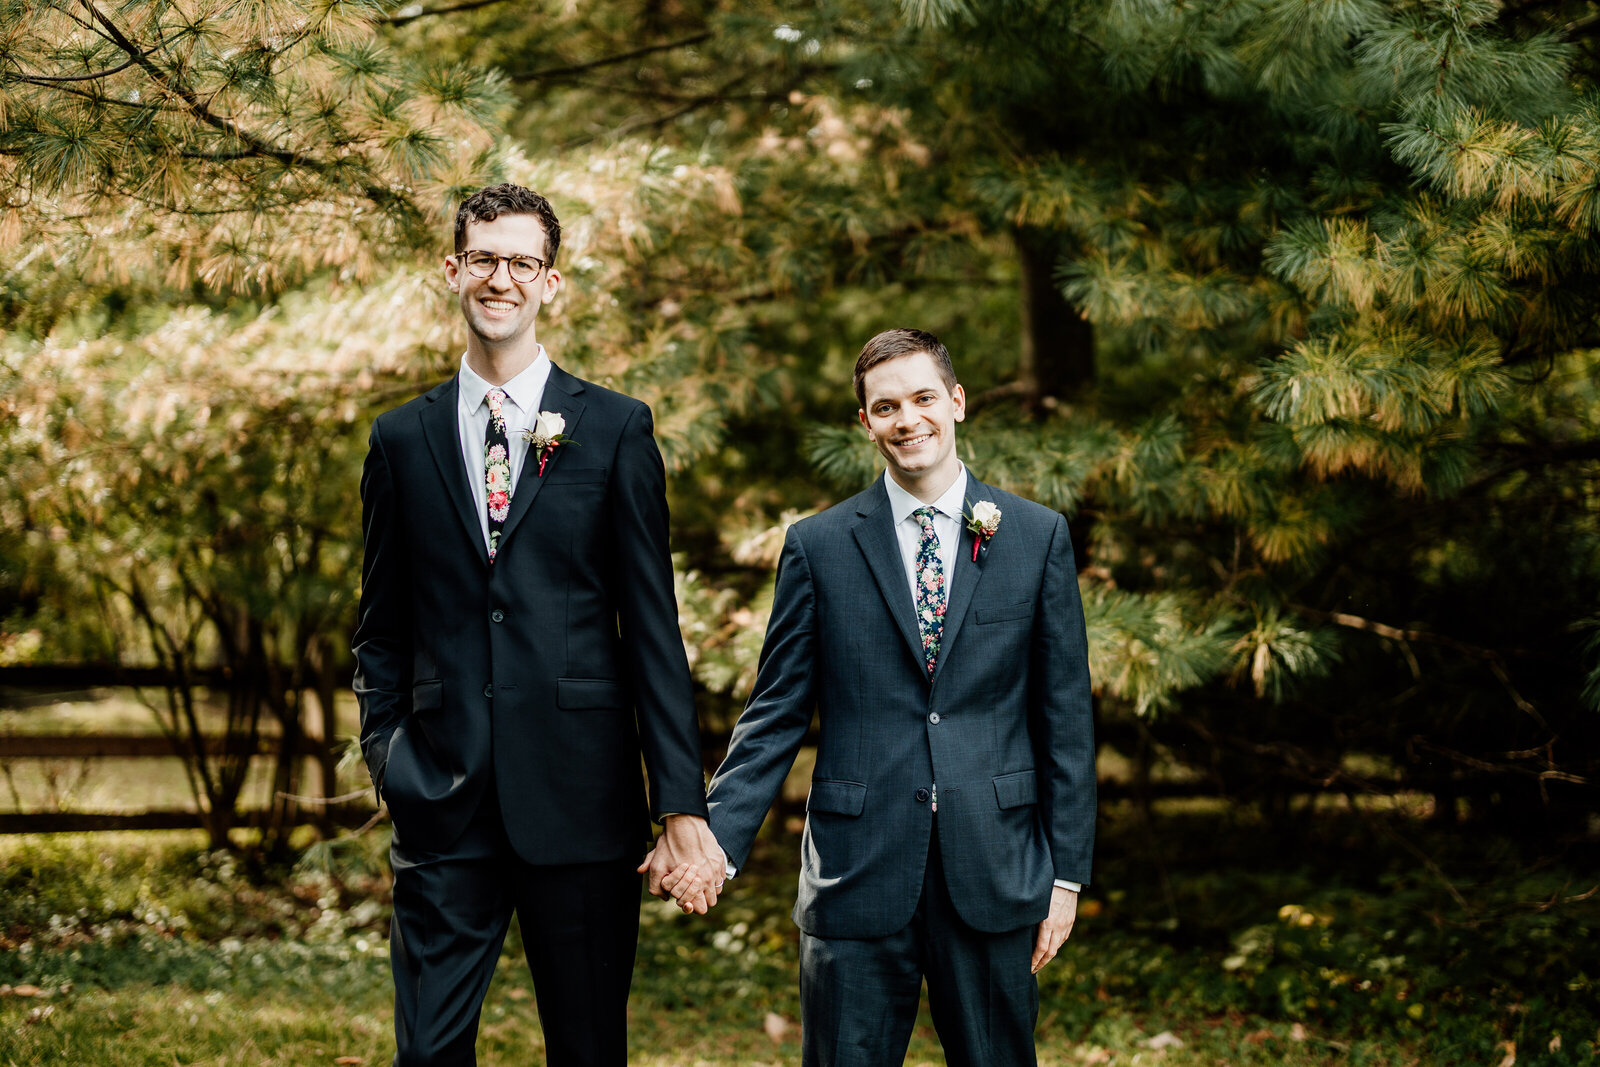 gay grooms holding hands in nature garden